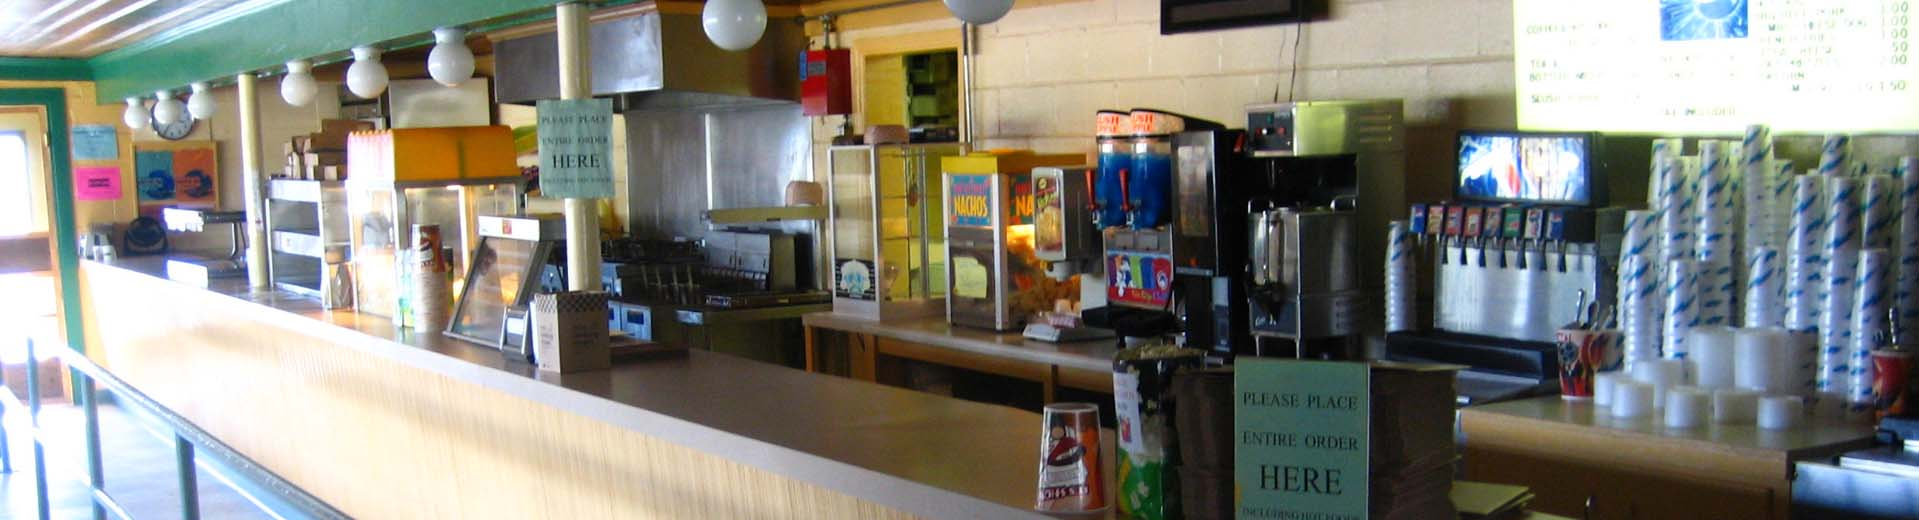 The concession stand at the Cumberland Drive-In Theatre in Newville